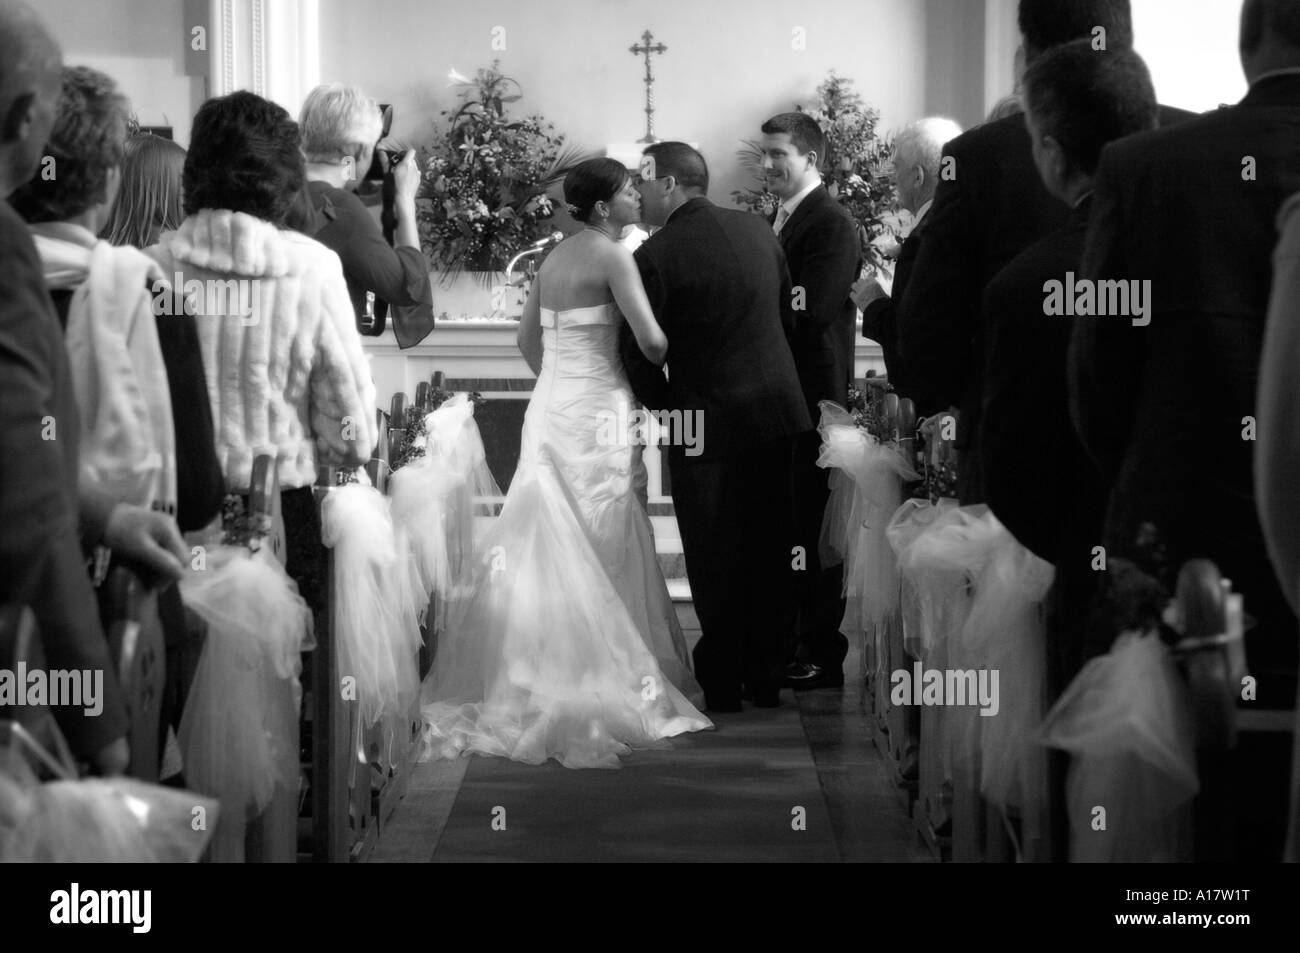 A bride being given away at the altar in a church - Stock Image